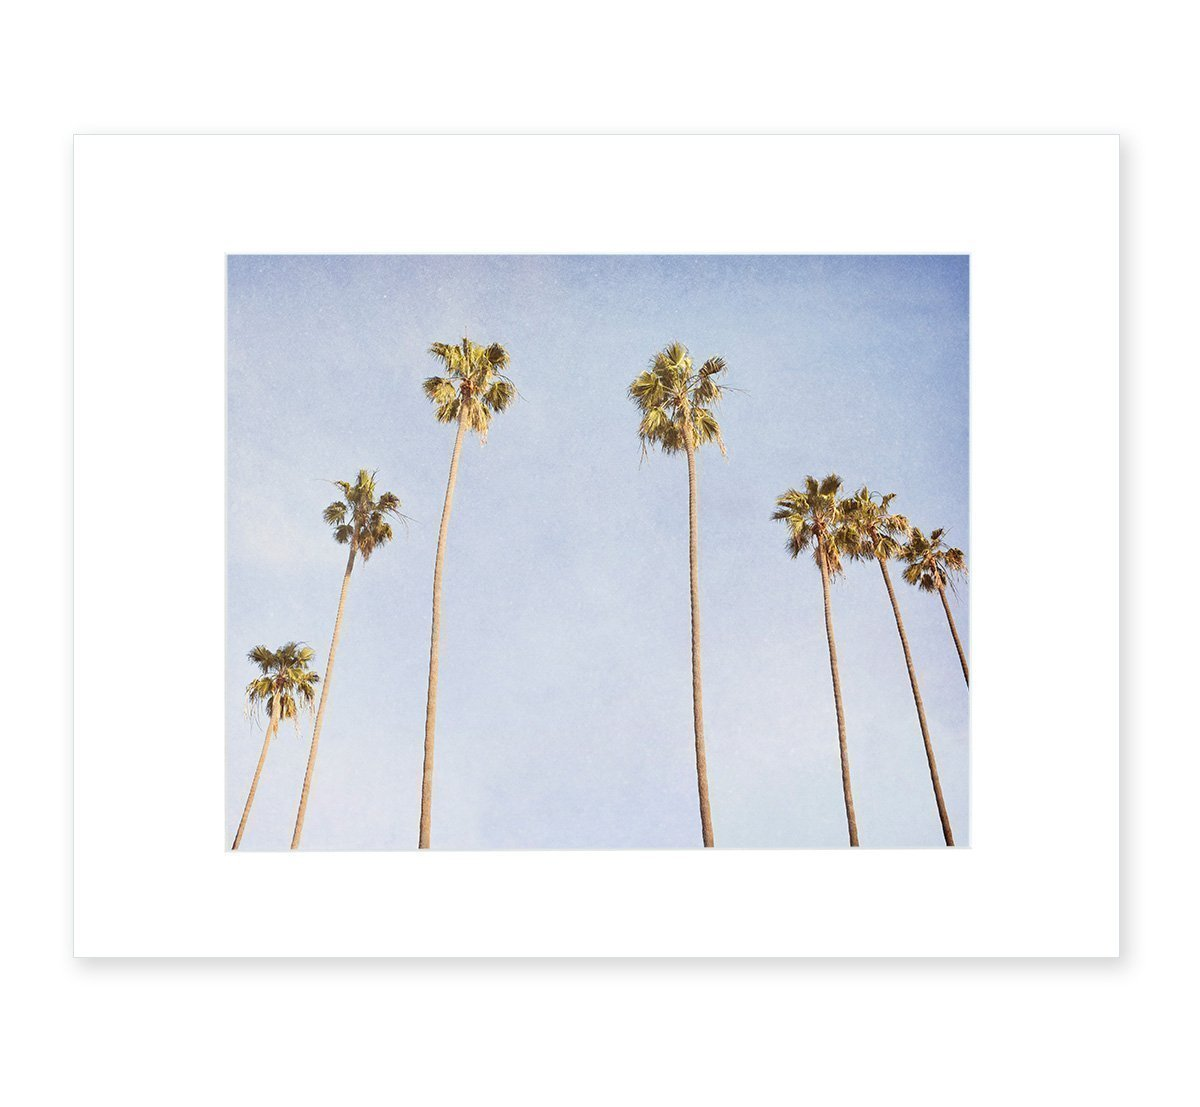 Venice Beach Palm Tree Wall Art, Tropical California Coastal Wall Decor Picture, 8x10 Matted Photographic Print (fits 11x14 frame), 'Venice Palms'